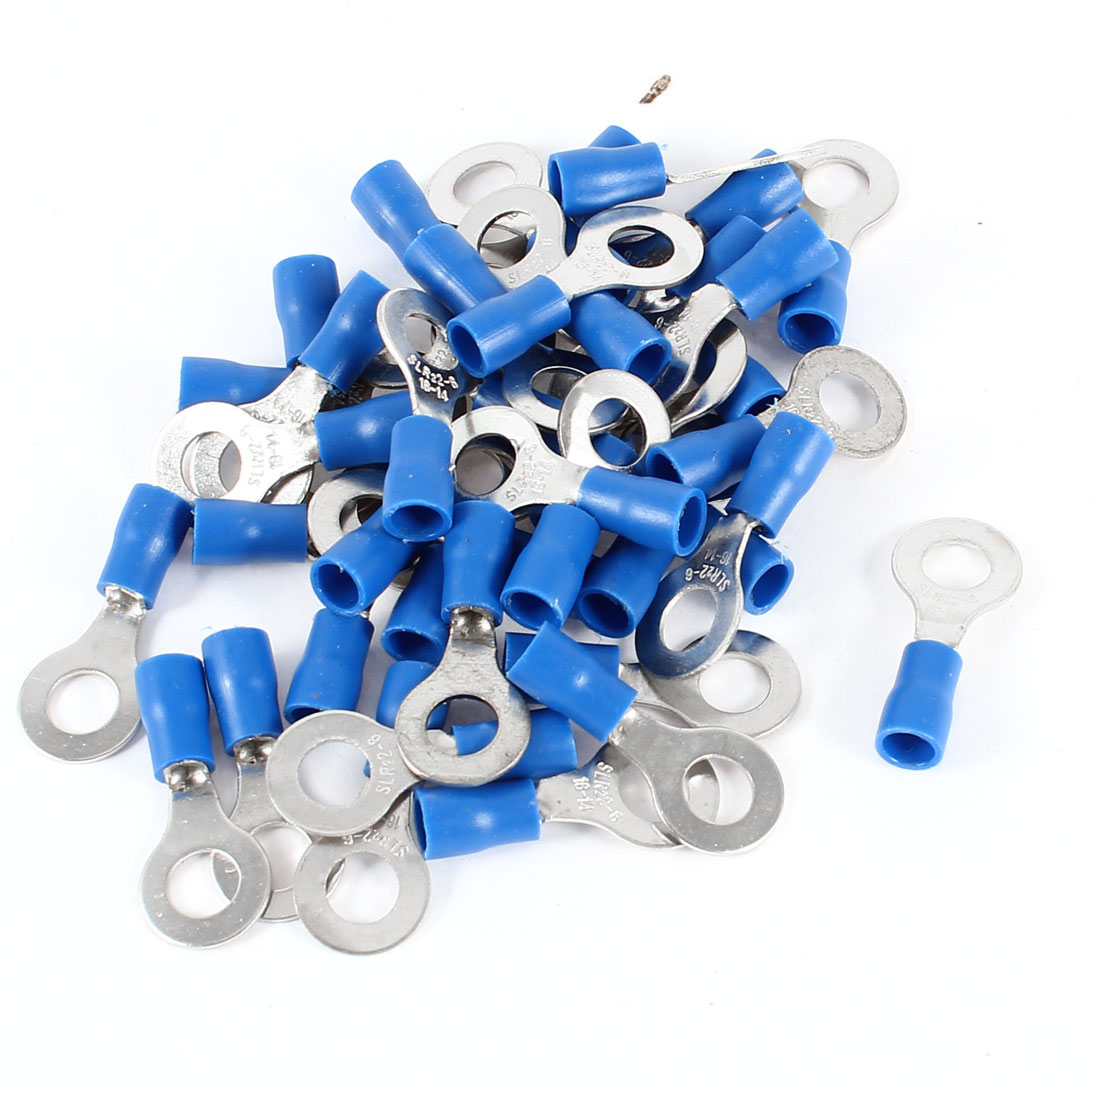 40 Pcs 16-14AWG Wire Cable Insulated Ring Crimp Terminal Blue SLR22-6